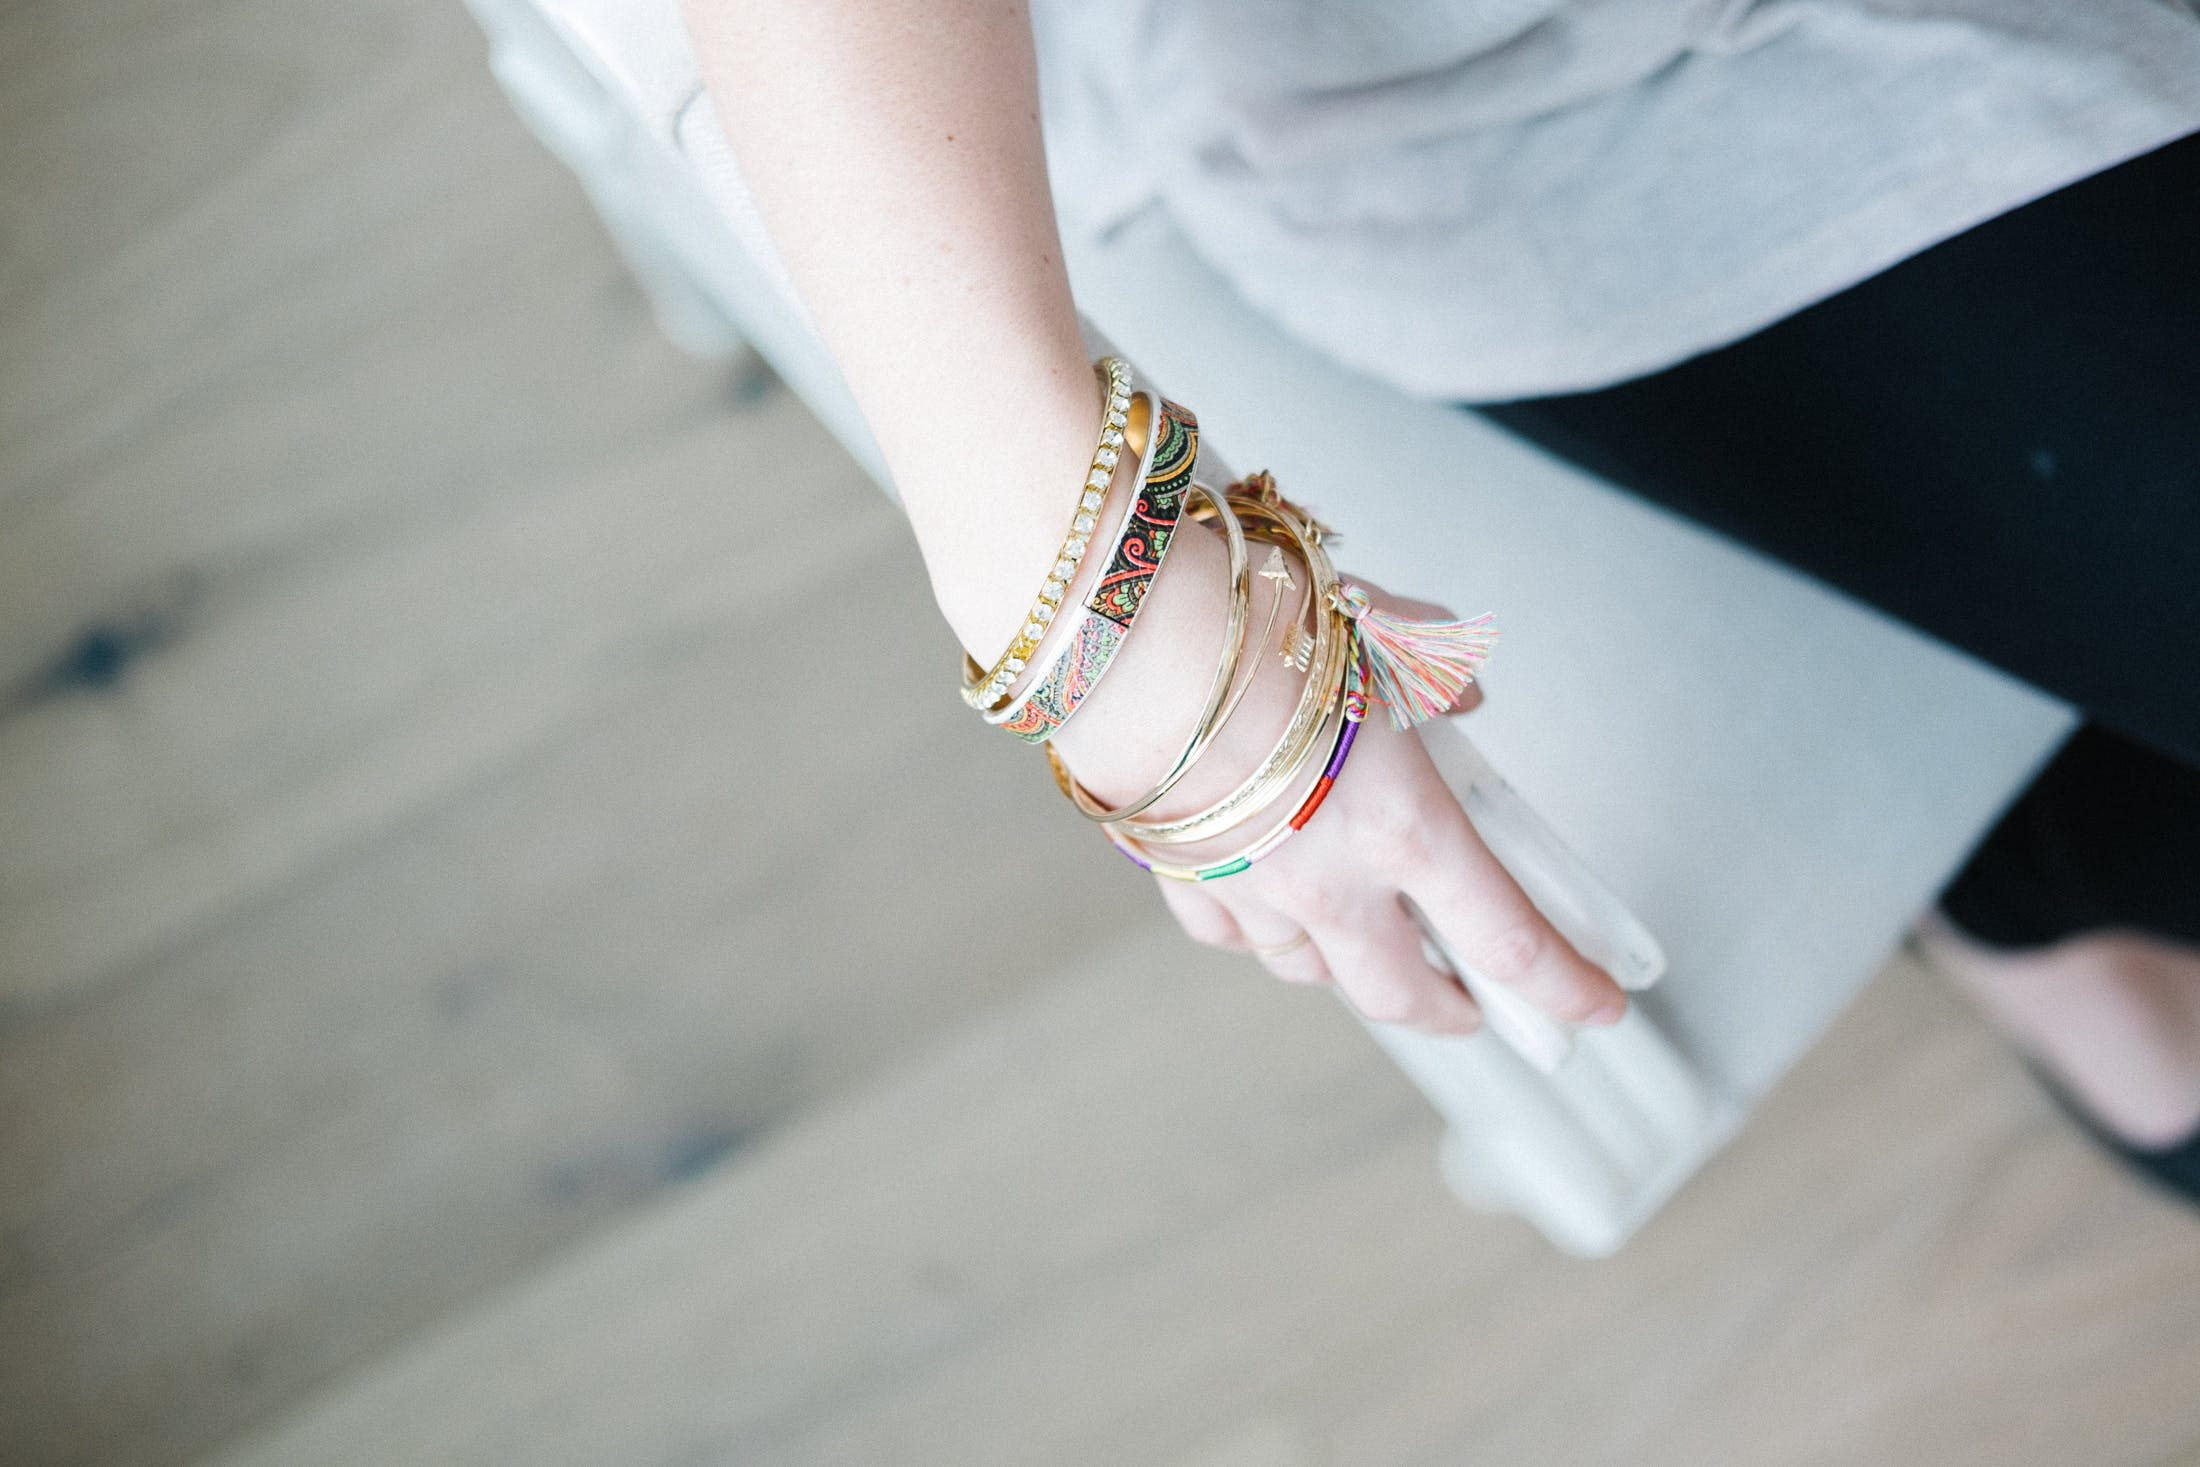 Selective Focus Photo of Person's Hand With Gold-bangles